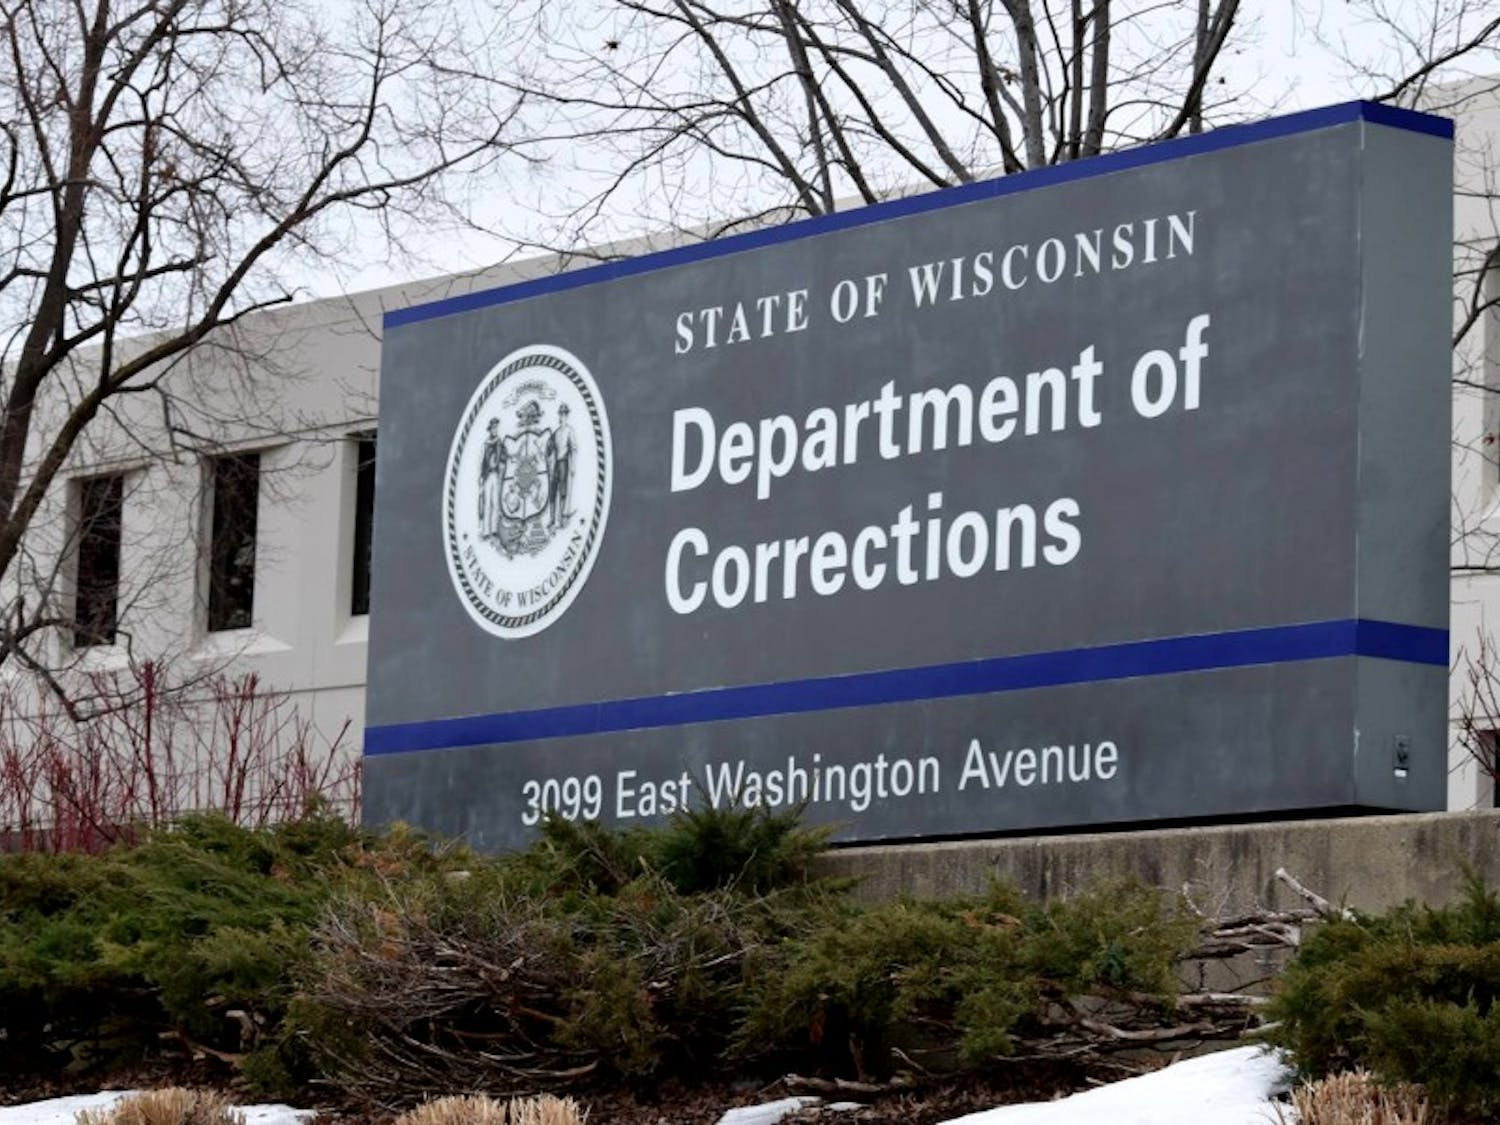 The Department of Corrections has come under fire after a Milwaukee JournalSentinel investigation allegedly showed instances of abuse and assault at the Lincoln Hills and Copper Lake juvenile facilities.